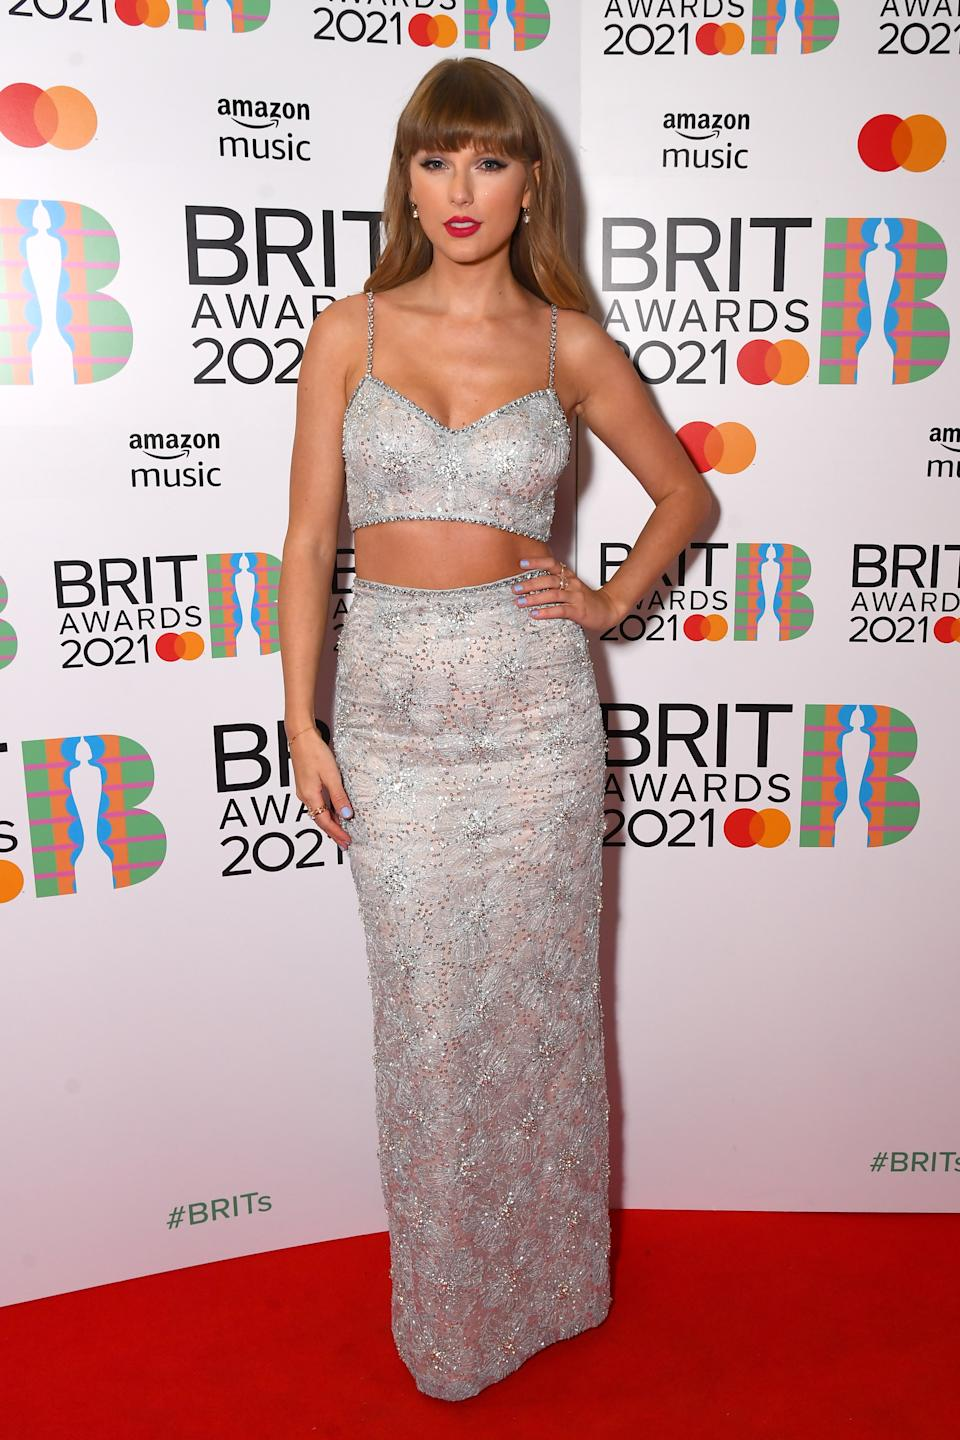 Taylor Swift poses backstage with the award for Global Icon during The BRIT Awards 2021 at The O2 Arena on May 11, 2021 in London, England